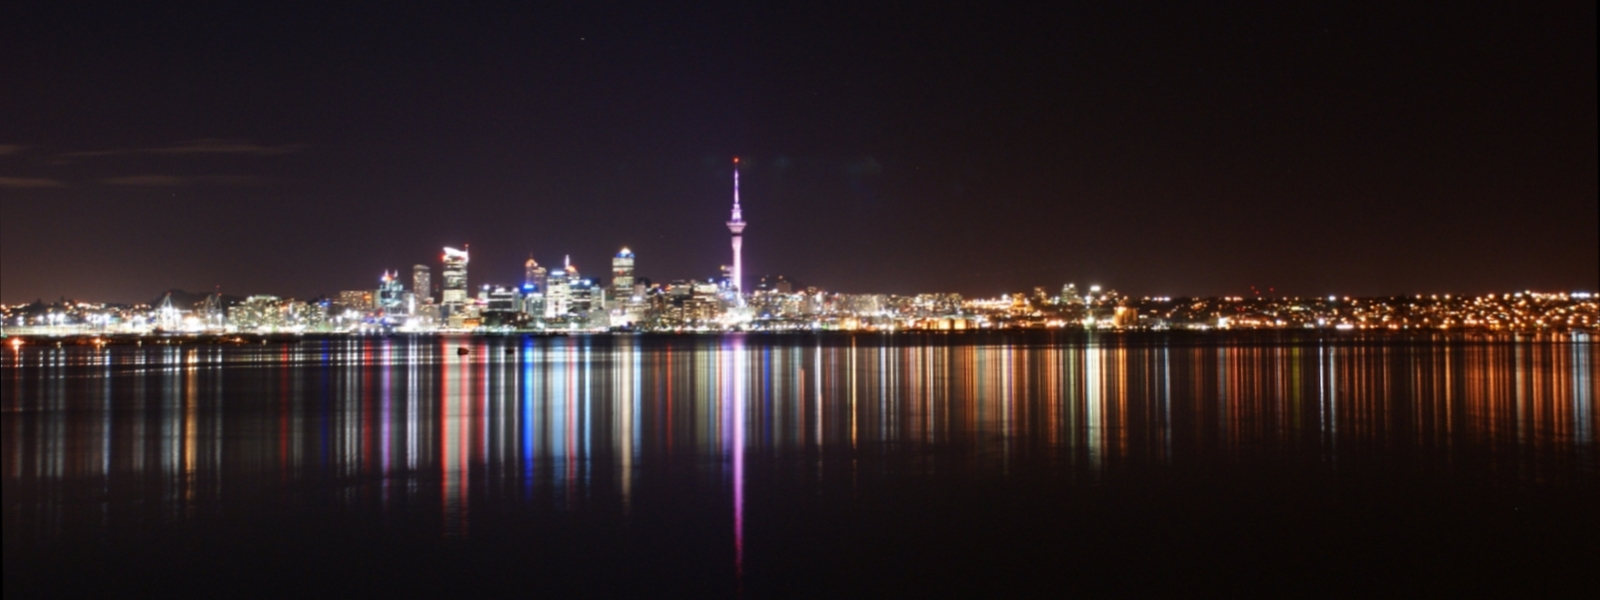 File:Auckland City & Skytower at night.jpg - Wikimedia Commons